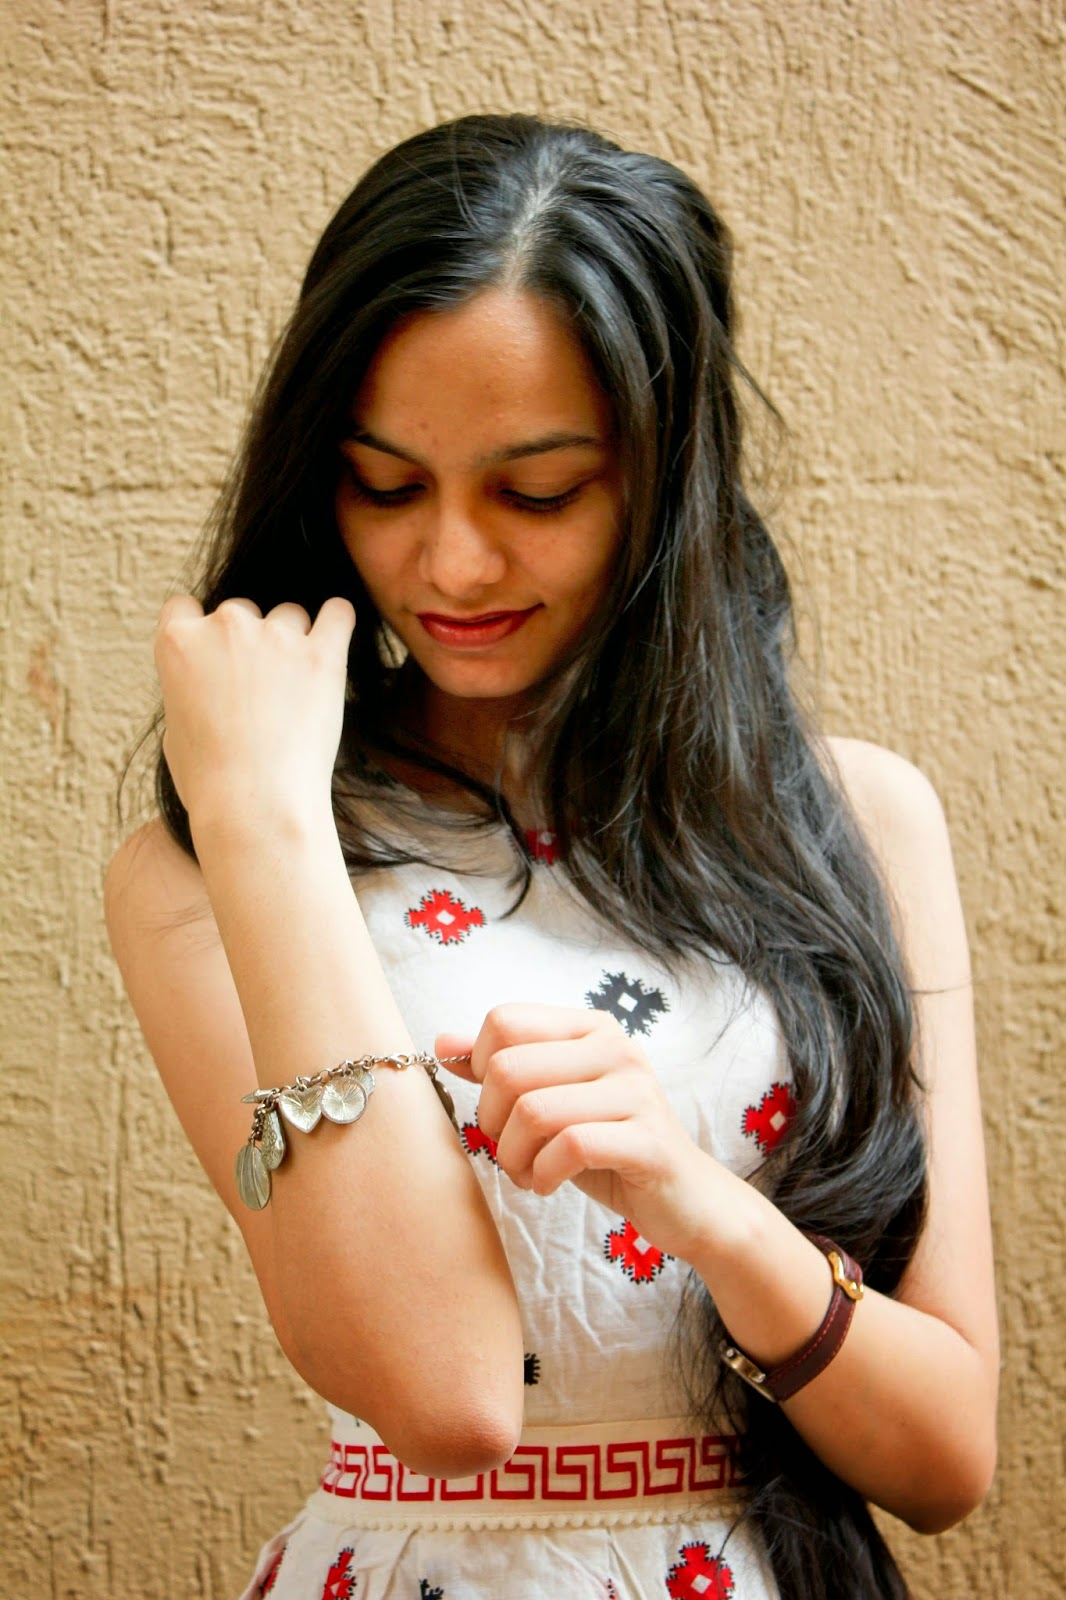 charm bracelet, topshop dress, printed dress, mumbai fashion blogger, mumbai streetstyle, valentine's day outfit ideas, valentine day look on budget, how to wear a charm bracelet, indian blogger, look for less, looks on a budget